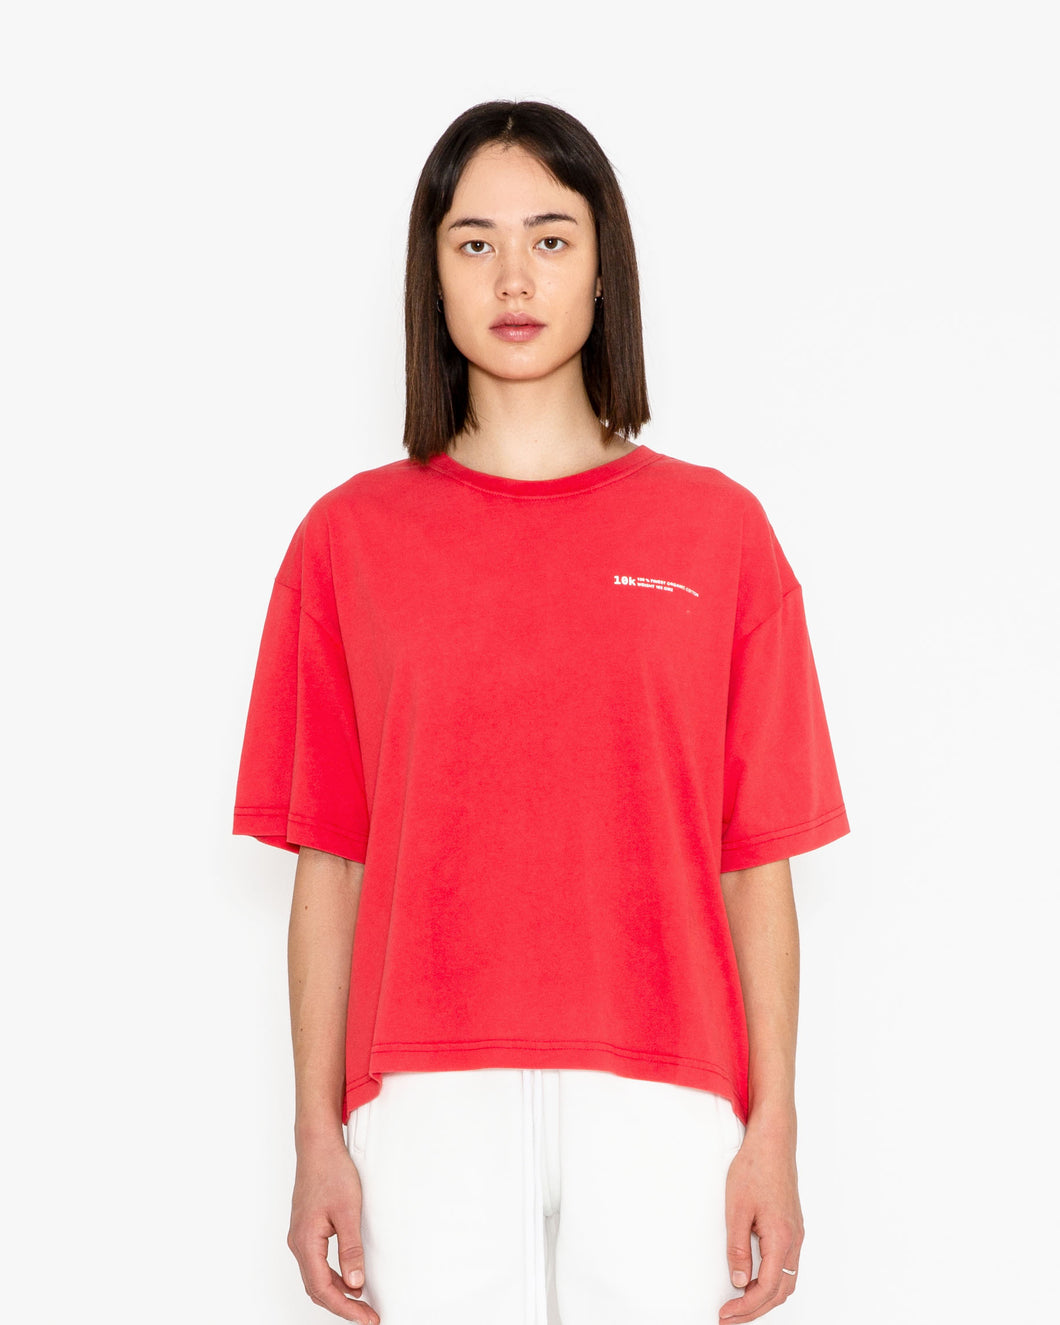 WOMAN T-SHIRT OVERSIZED RED VINTAGE